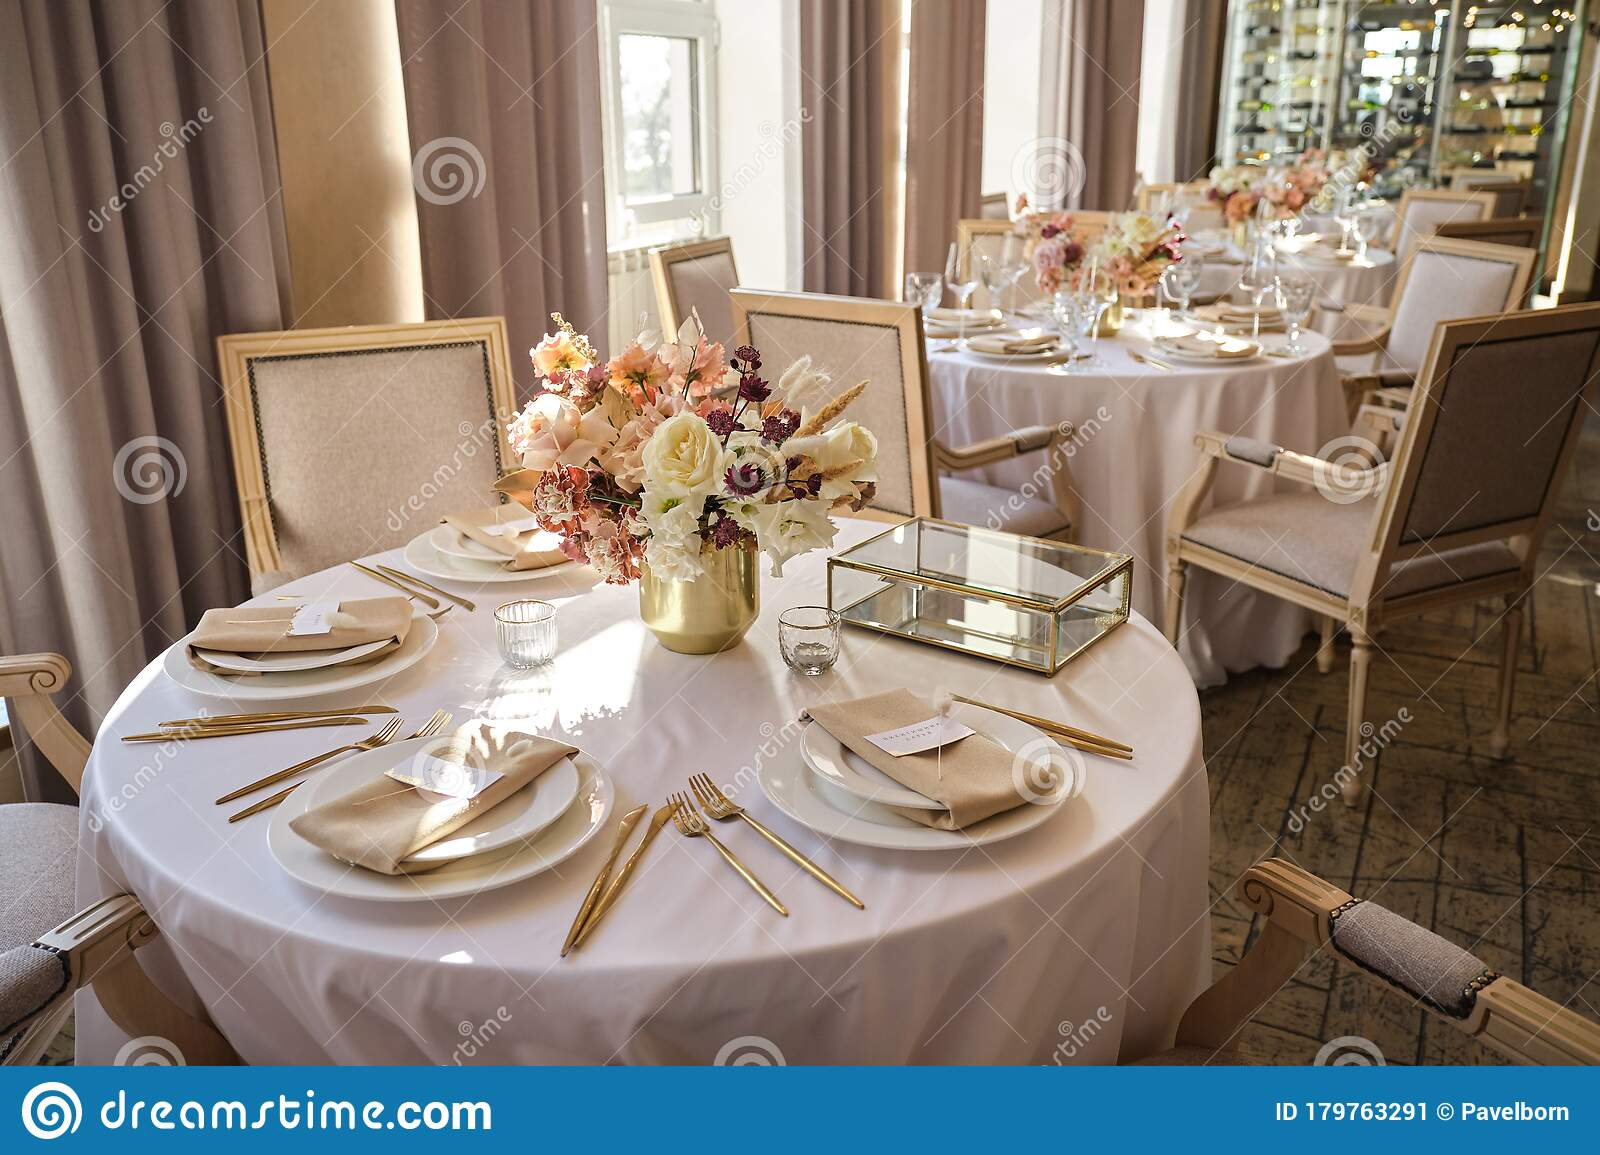 Luxury Cozy Autumn Wedding Table Decoration In The Restaurant Fresh And Dried Flowers Roses Carnations Beautiful Table Setting Stock Image Image Of Banquet Napkin 179763291